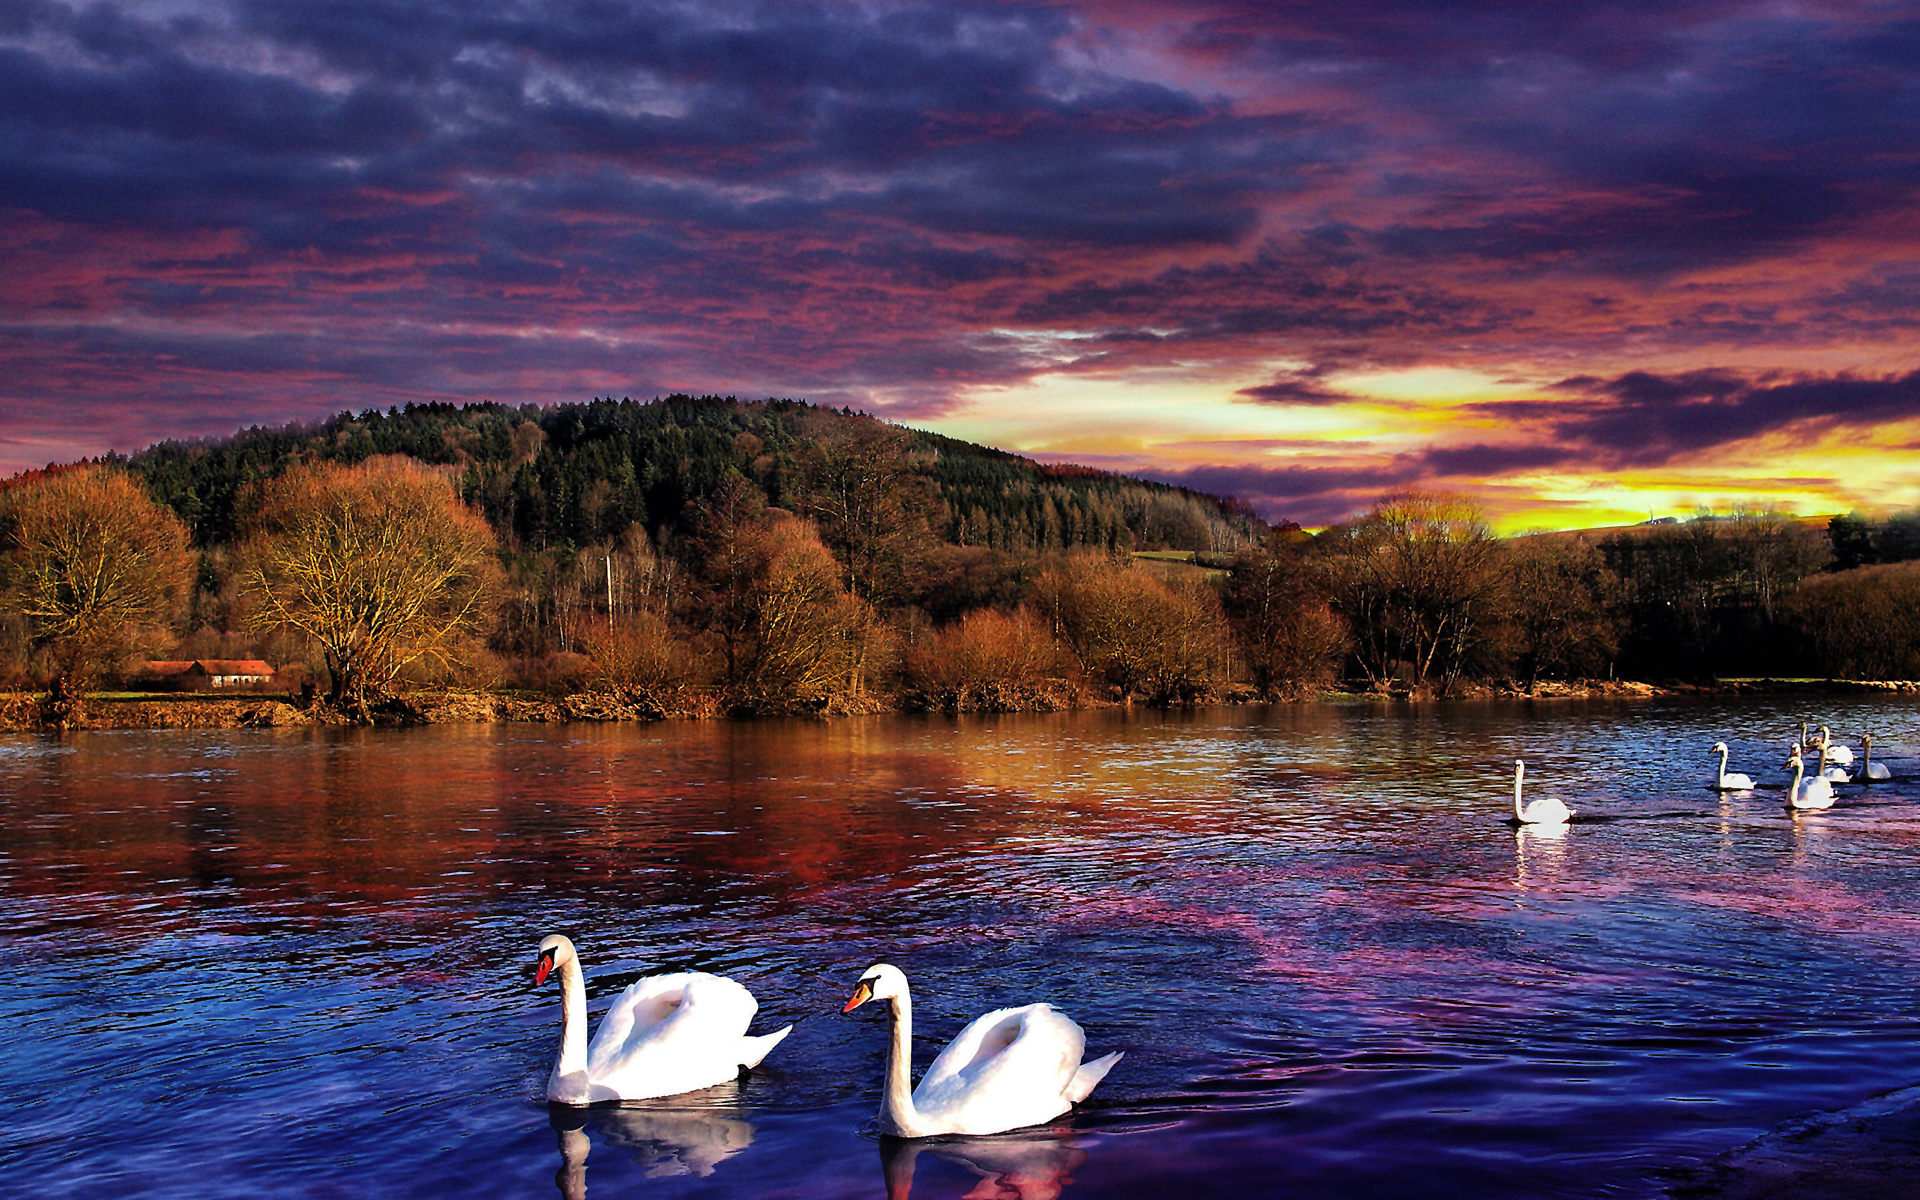 sunset images swans